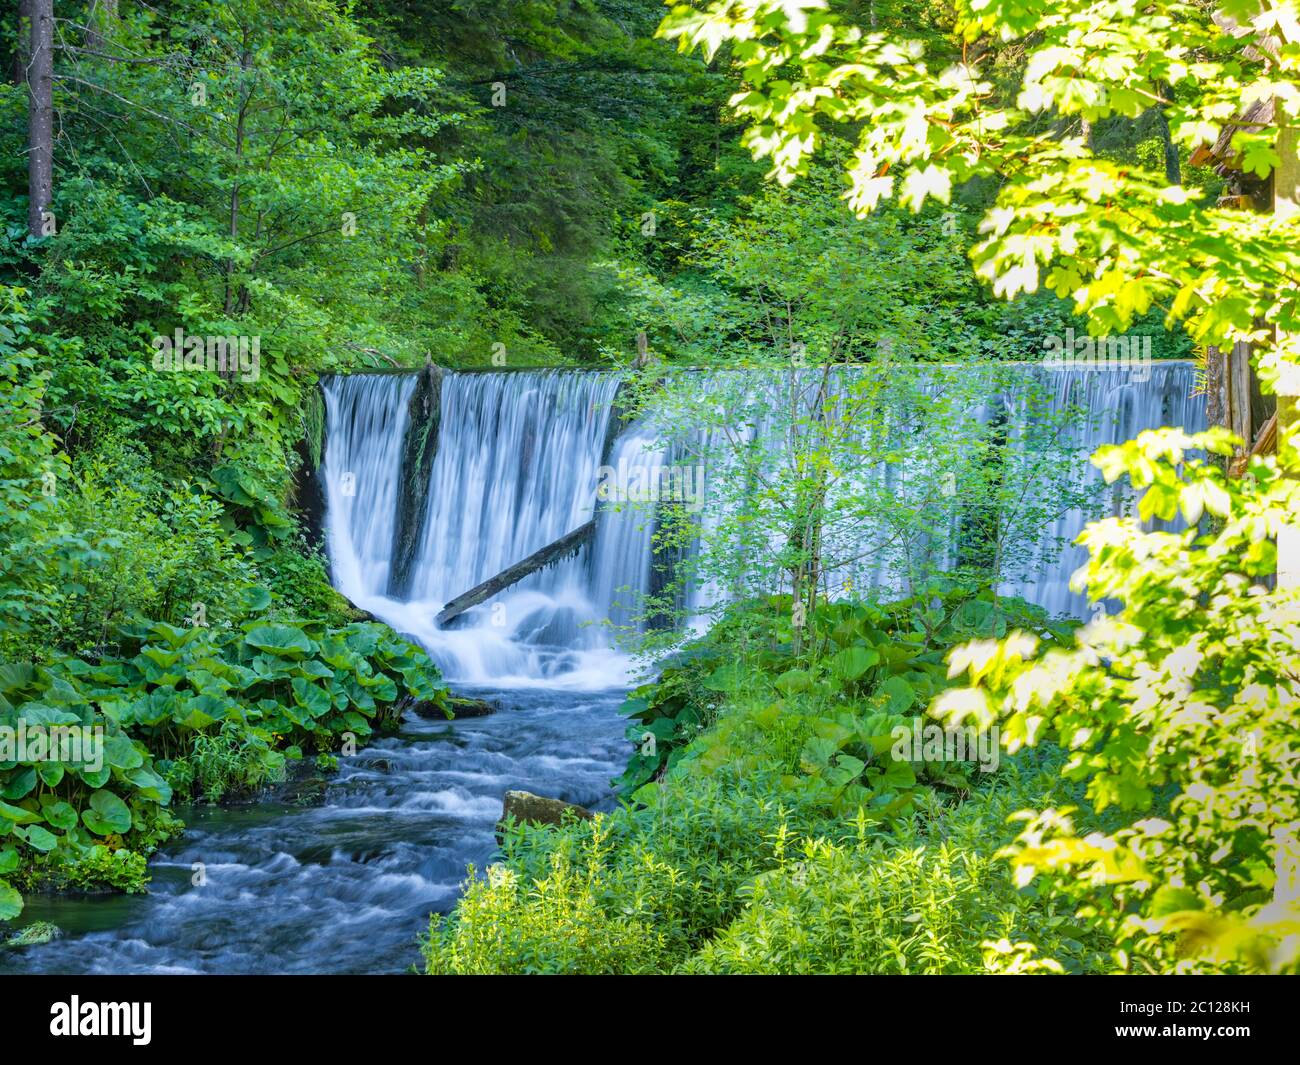 Lake with waterfall and derelict old sawmill and watermill Cogrljevo jezero Croatia Europe Stock Photo